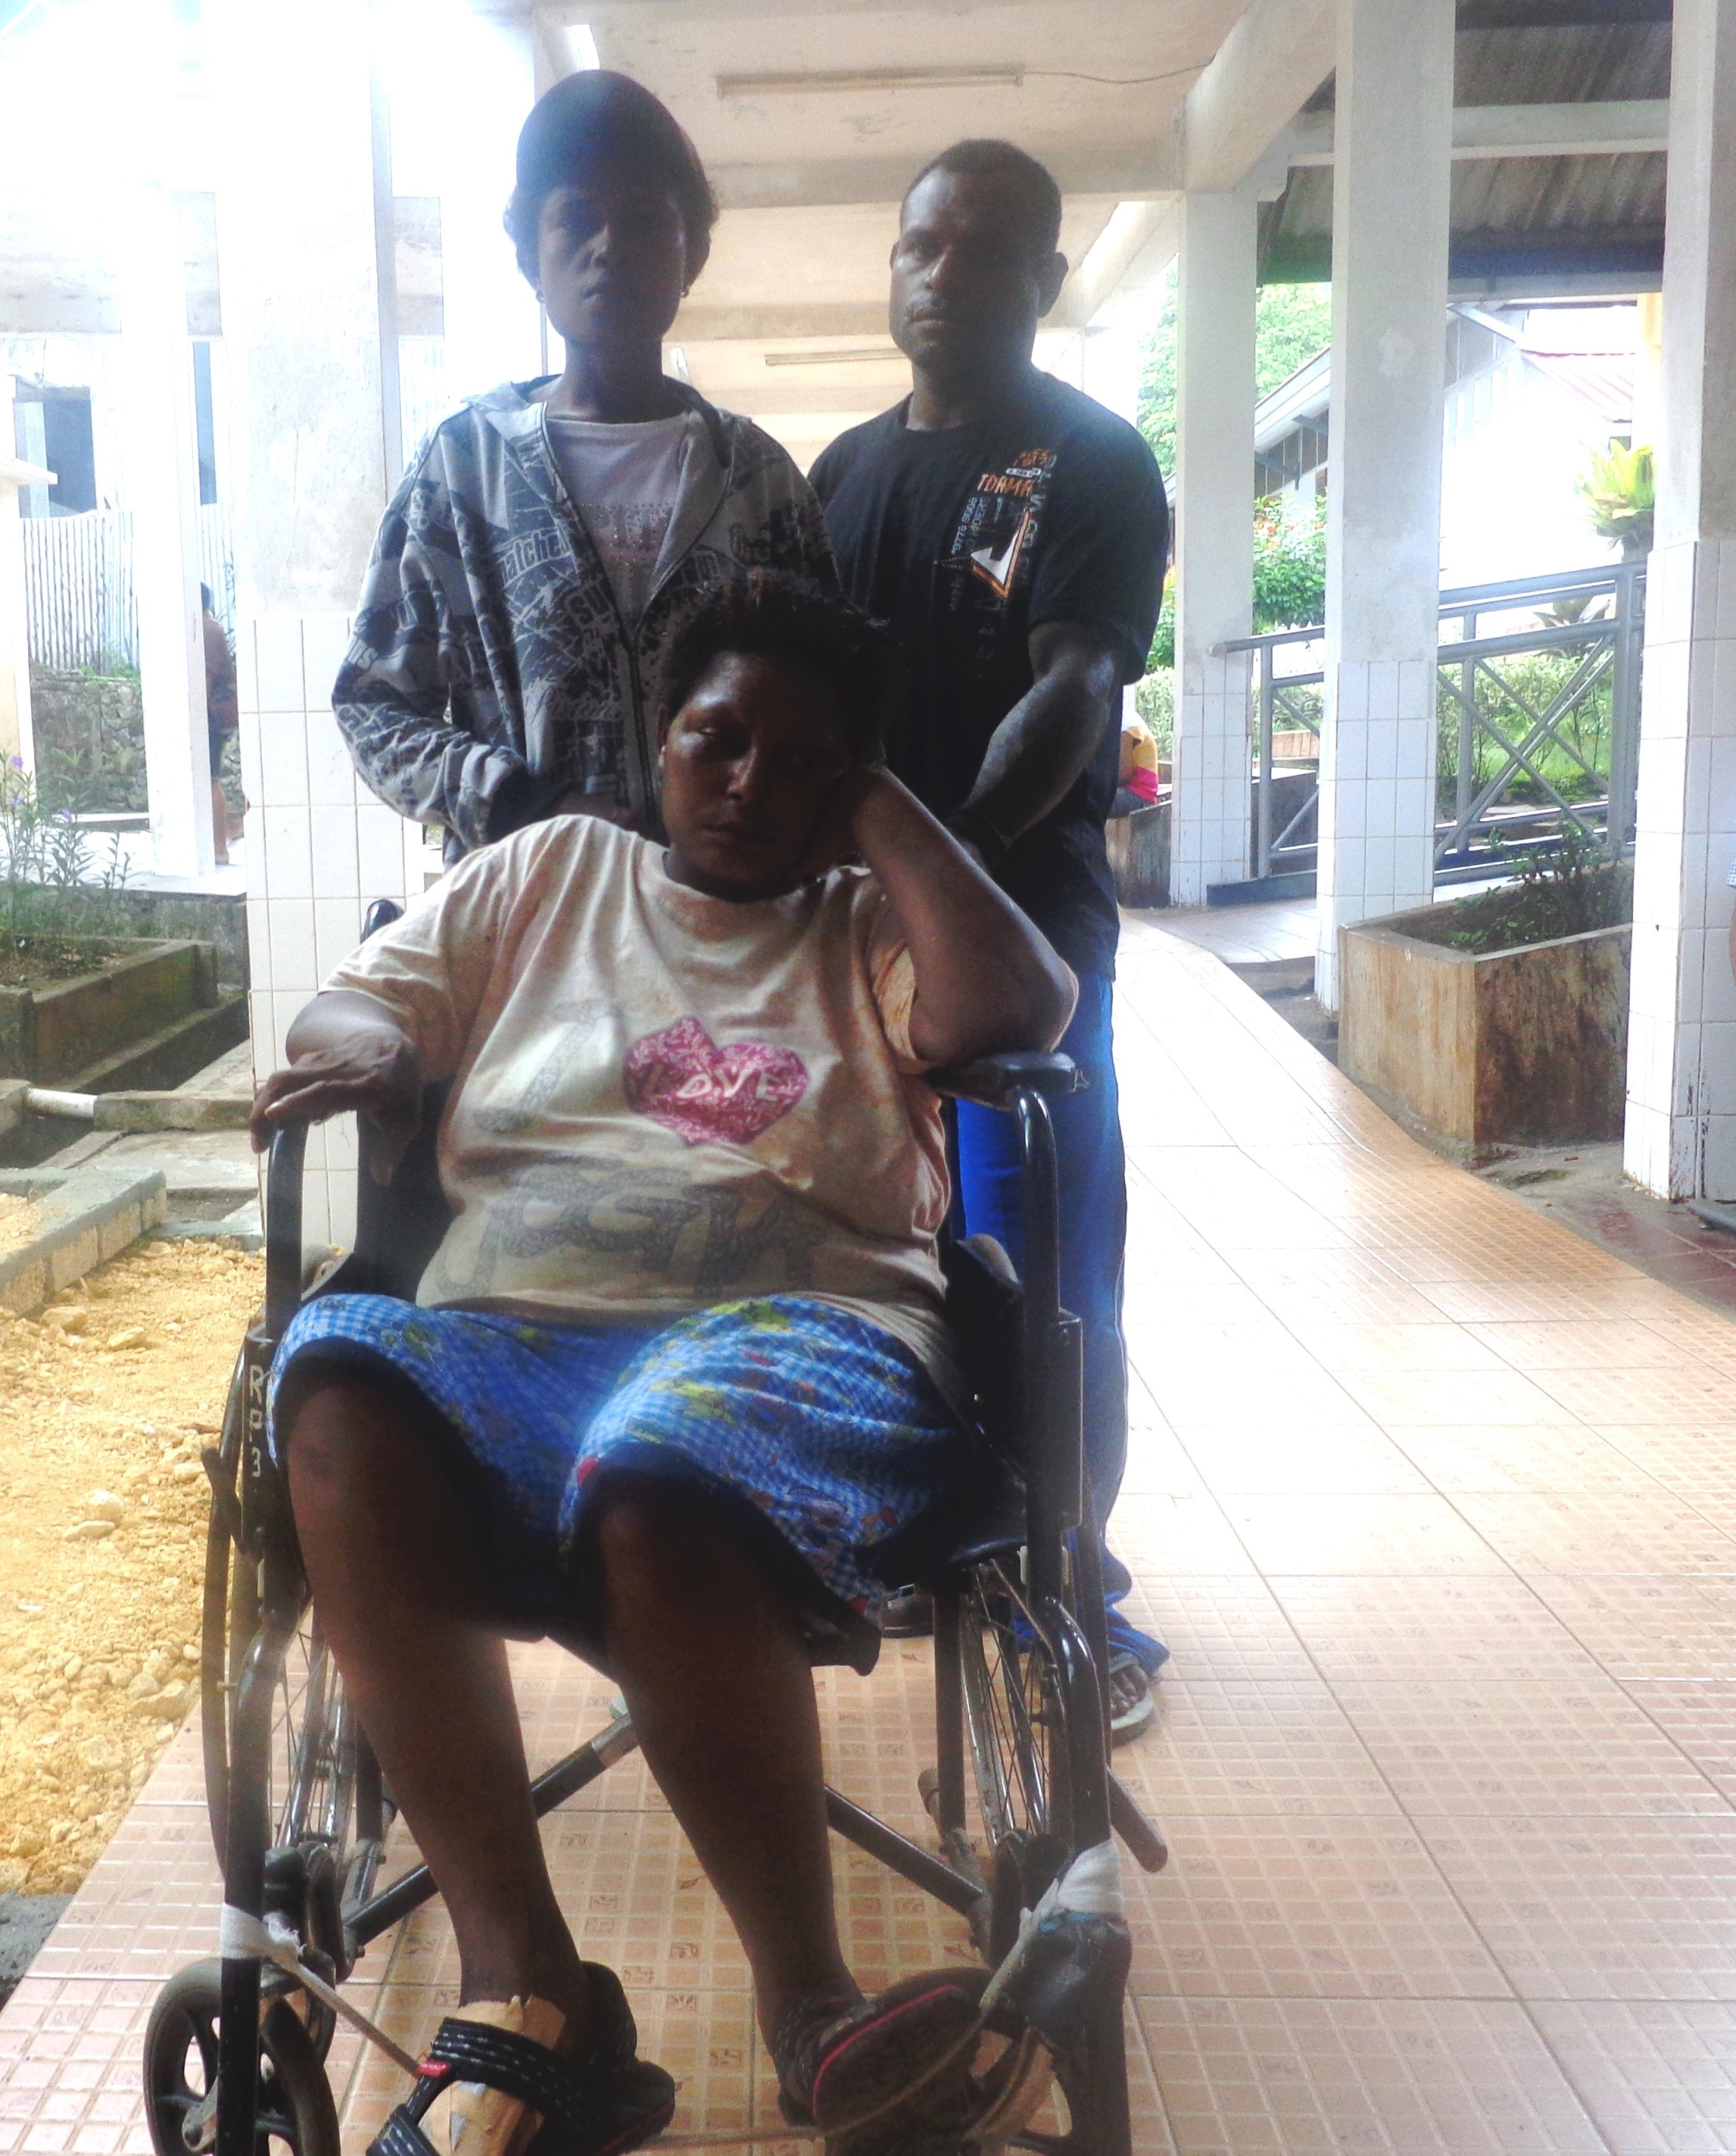 Indonesian Papuan indigenous persons qualify for health insurance under a recent government program that has swelled patient queues and hospital waiting rooms as people like Yusmina Wakum (seated in the wheelchair) take advantage of the near-free treatmen